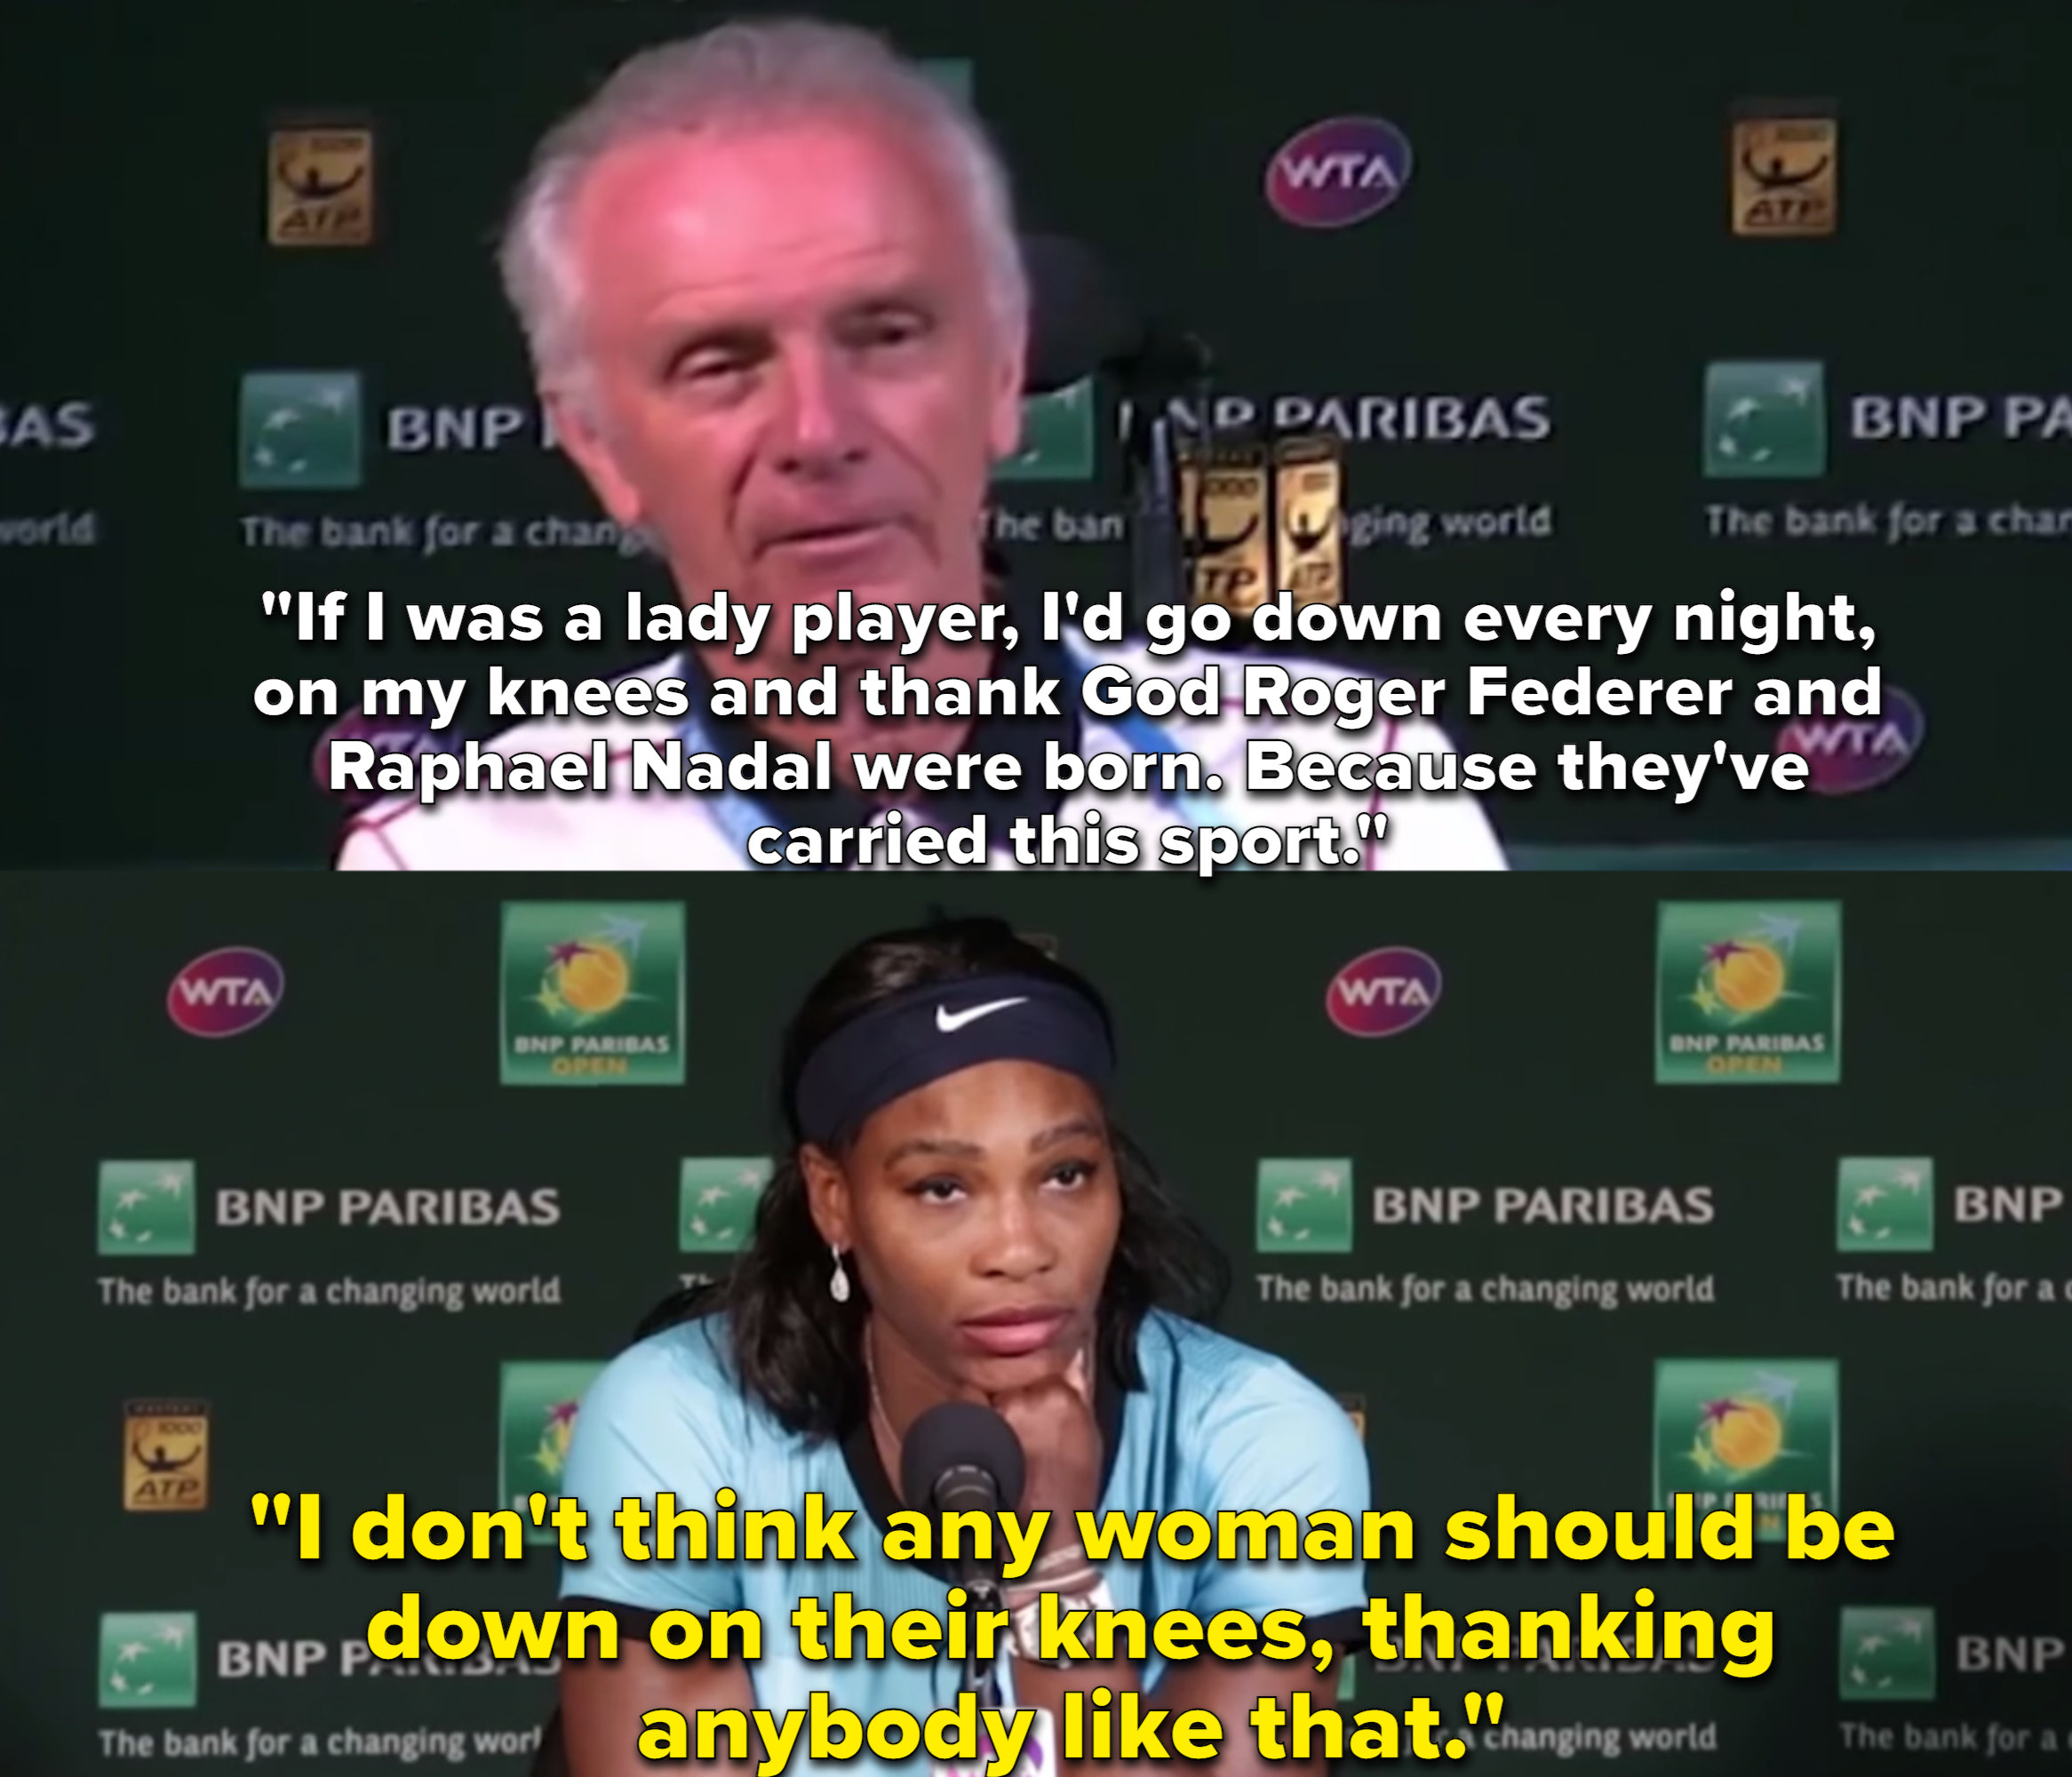 Tennis executive Raymond Moore made a comment that female tennis players should be on their knees thanking men for carrying their sport and Serena Williams looks deadpan as she says no women should ever be on her knees like that.